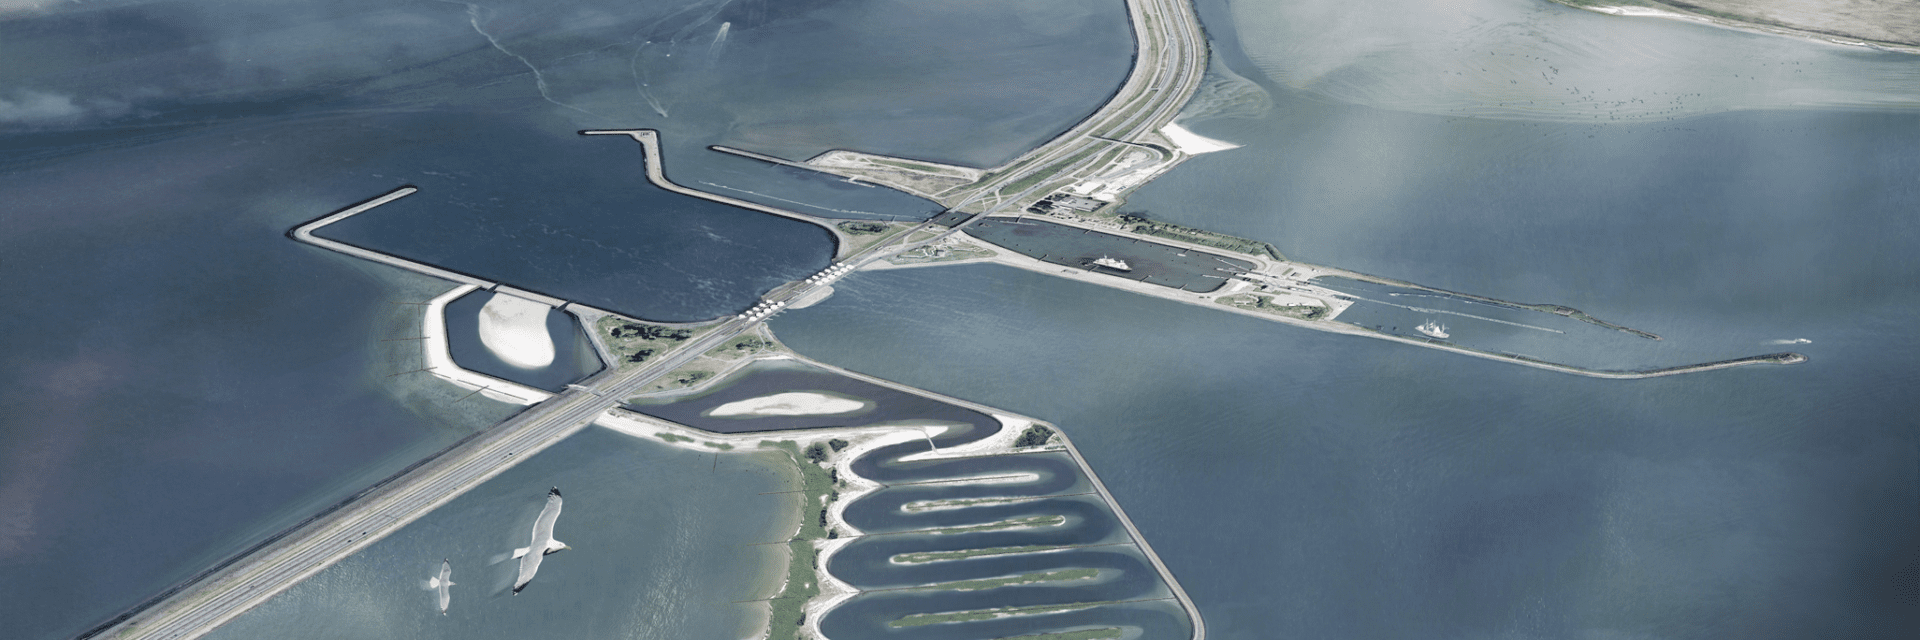 Impression of the Fish Migration River. You see a drawn version of the Afsluitdijk. The Fish Migration River has been drawn in the Afsluitdijk. This is a meandering river, outlined with strips of soil. On the side of the Waddenzee you will see an estuary harbor. In this image, the green is also drawn near the dike.